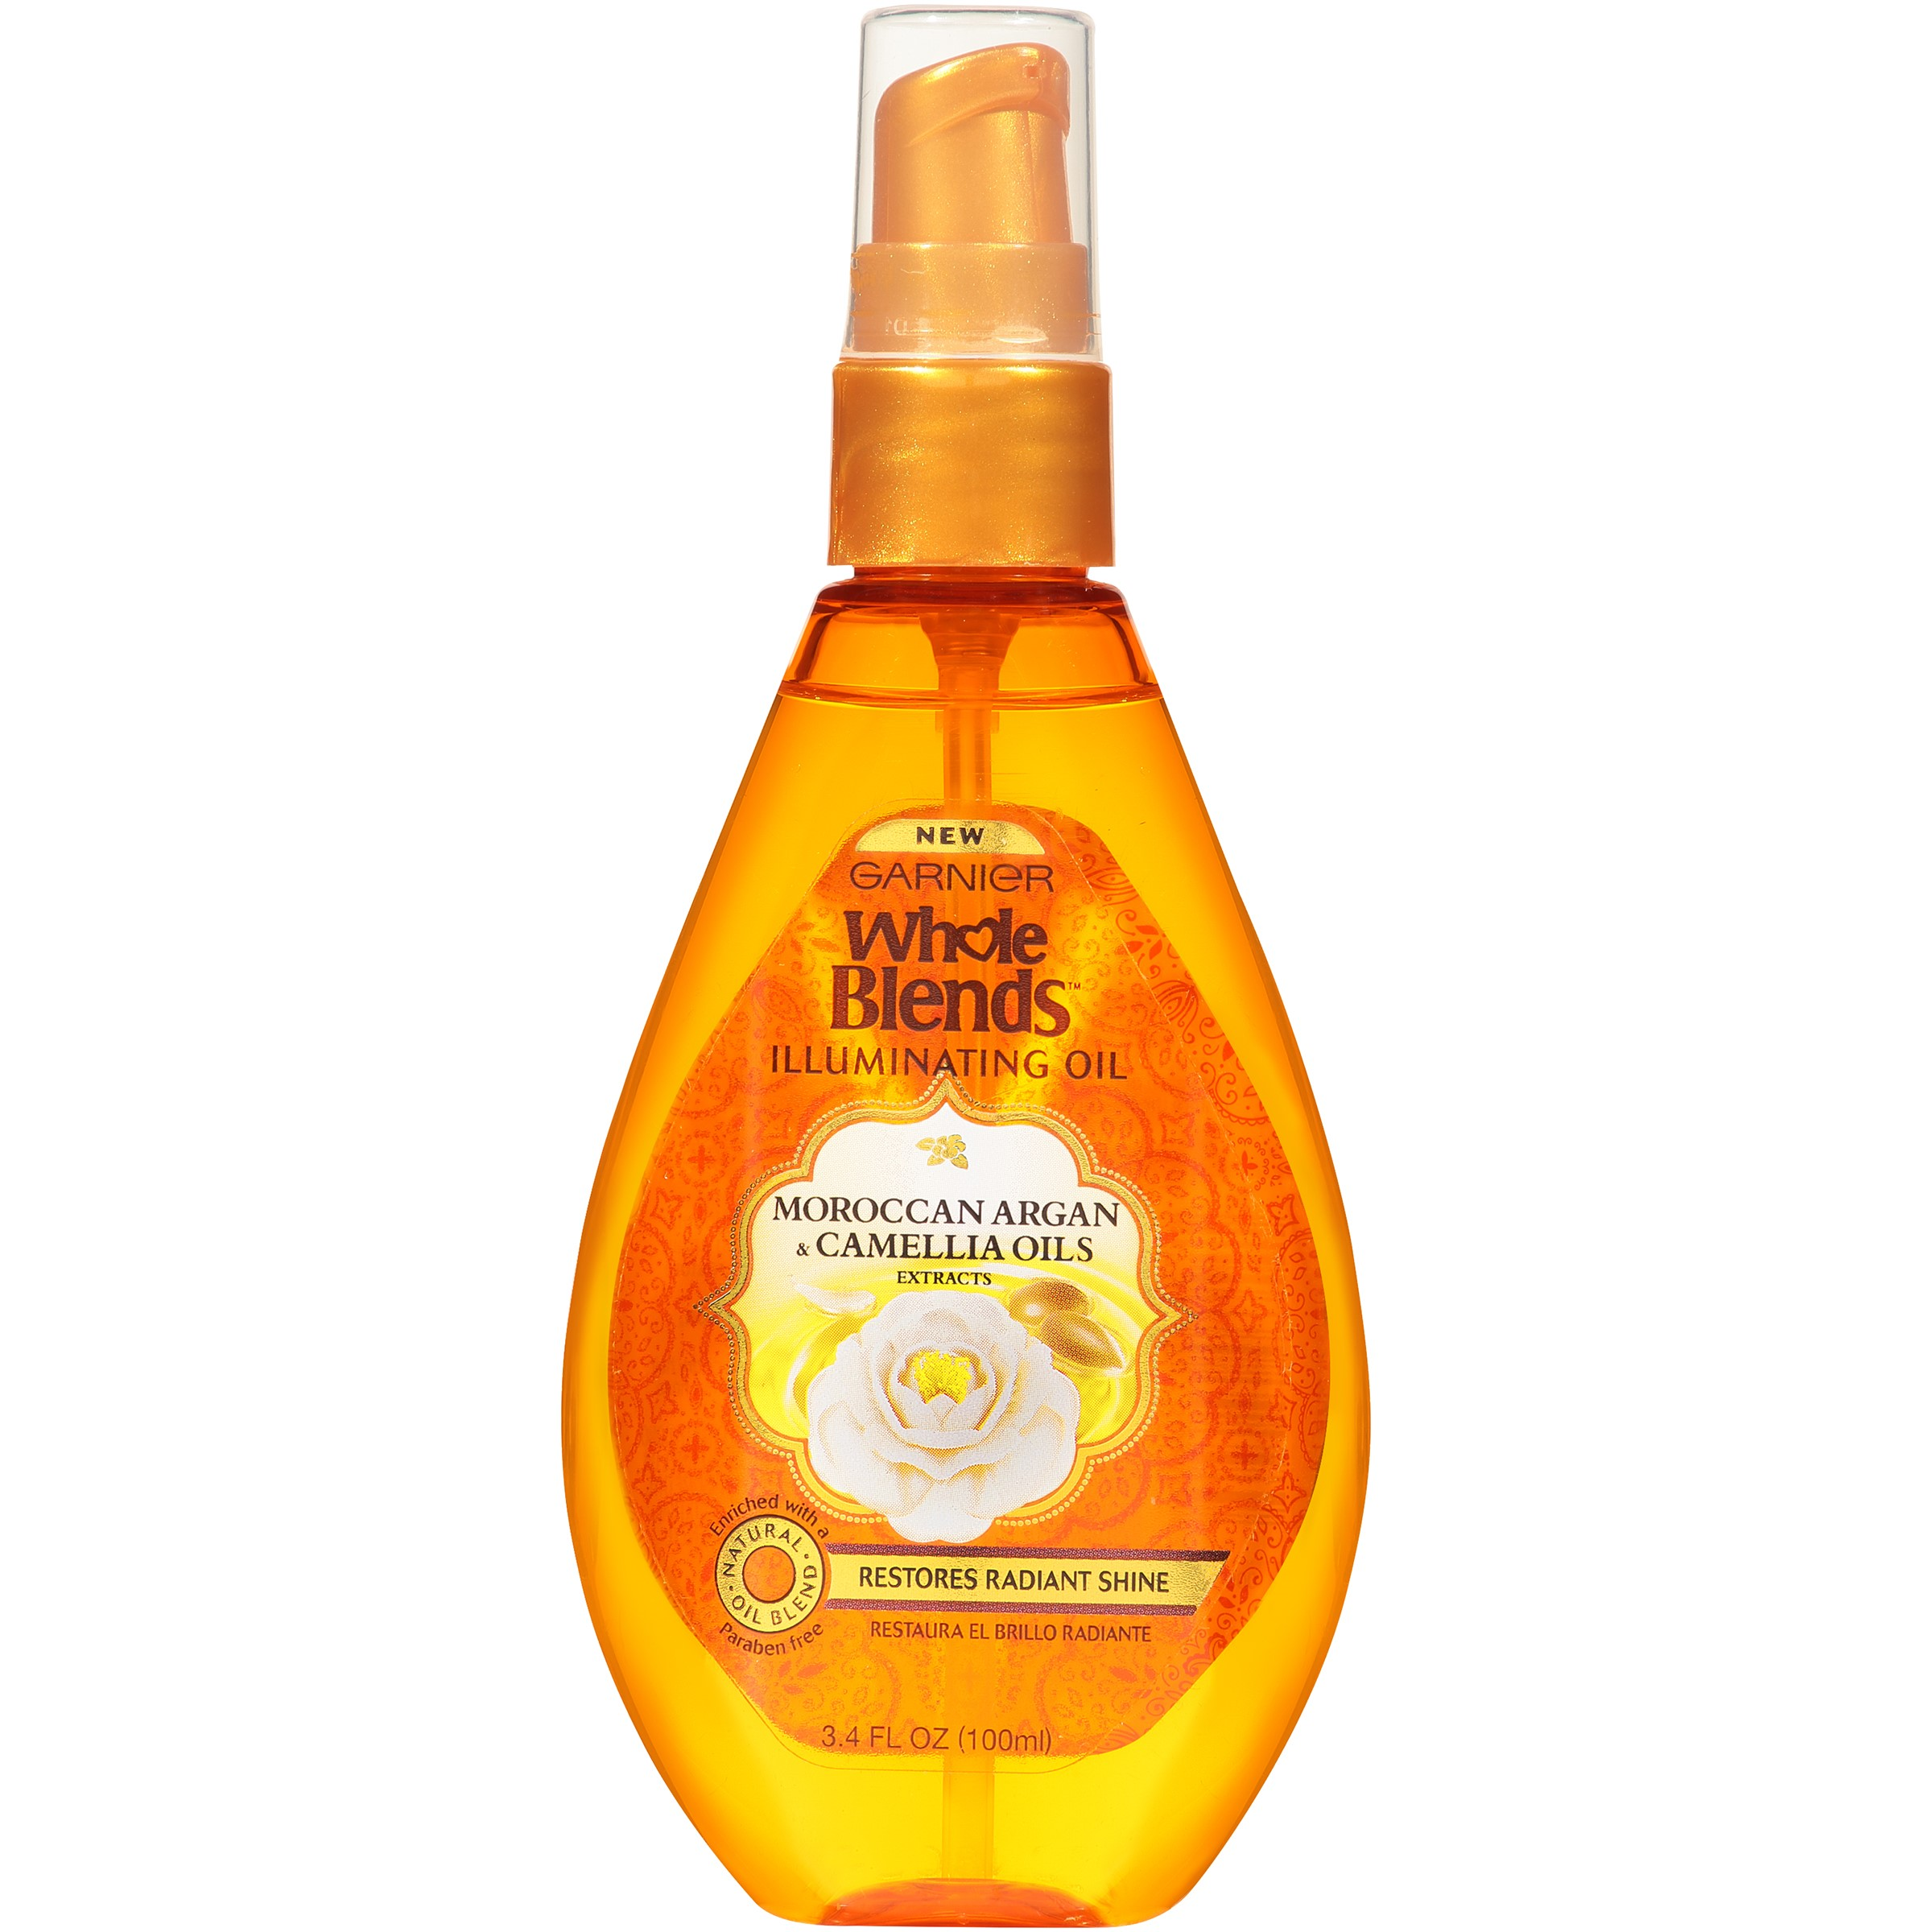 Garnier Whole Blends Illuminating Hair Oil, 3.4 Fl Oz